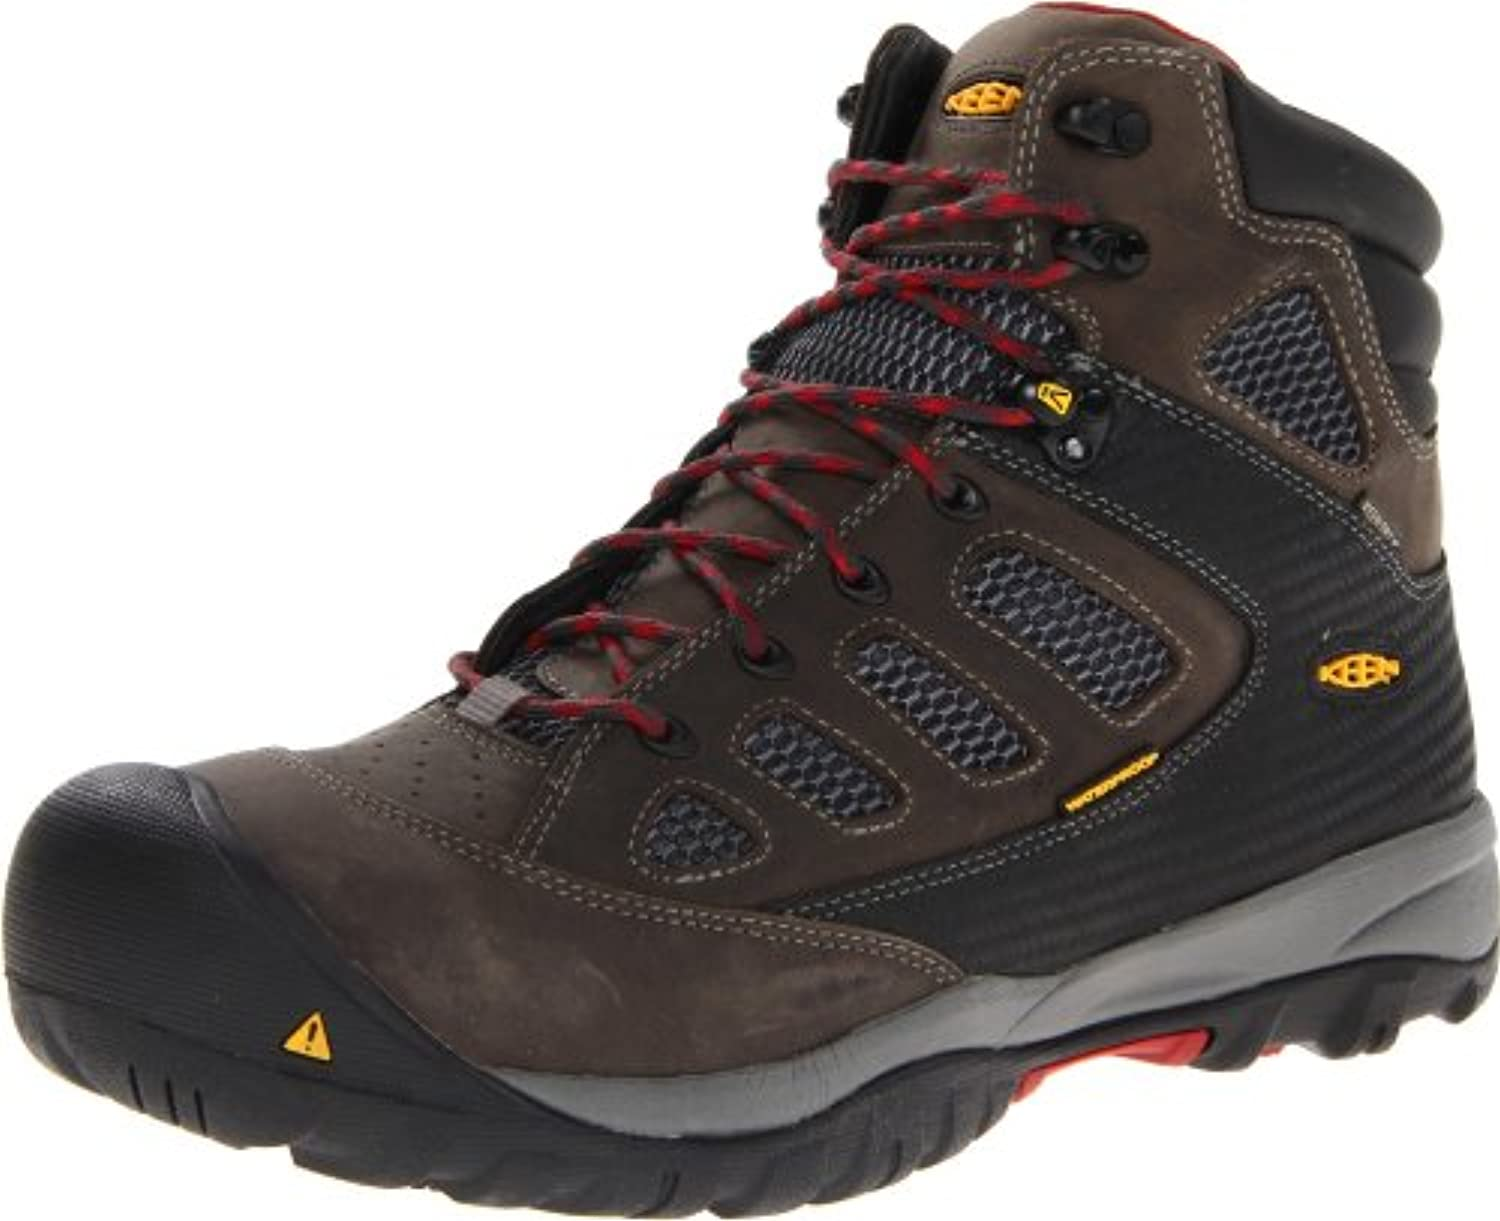 Keen Utility Men's Tucson Mid Work Boot Magnet/Chili Pepper  10.5 D US